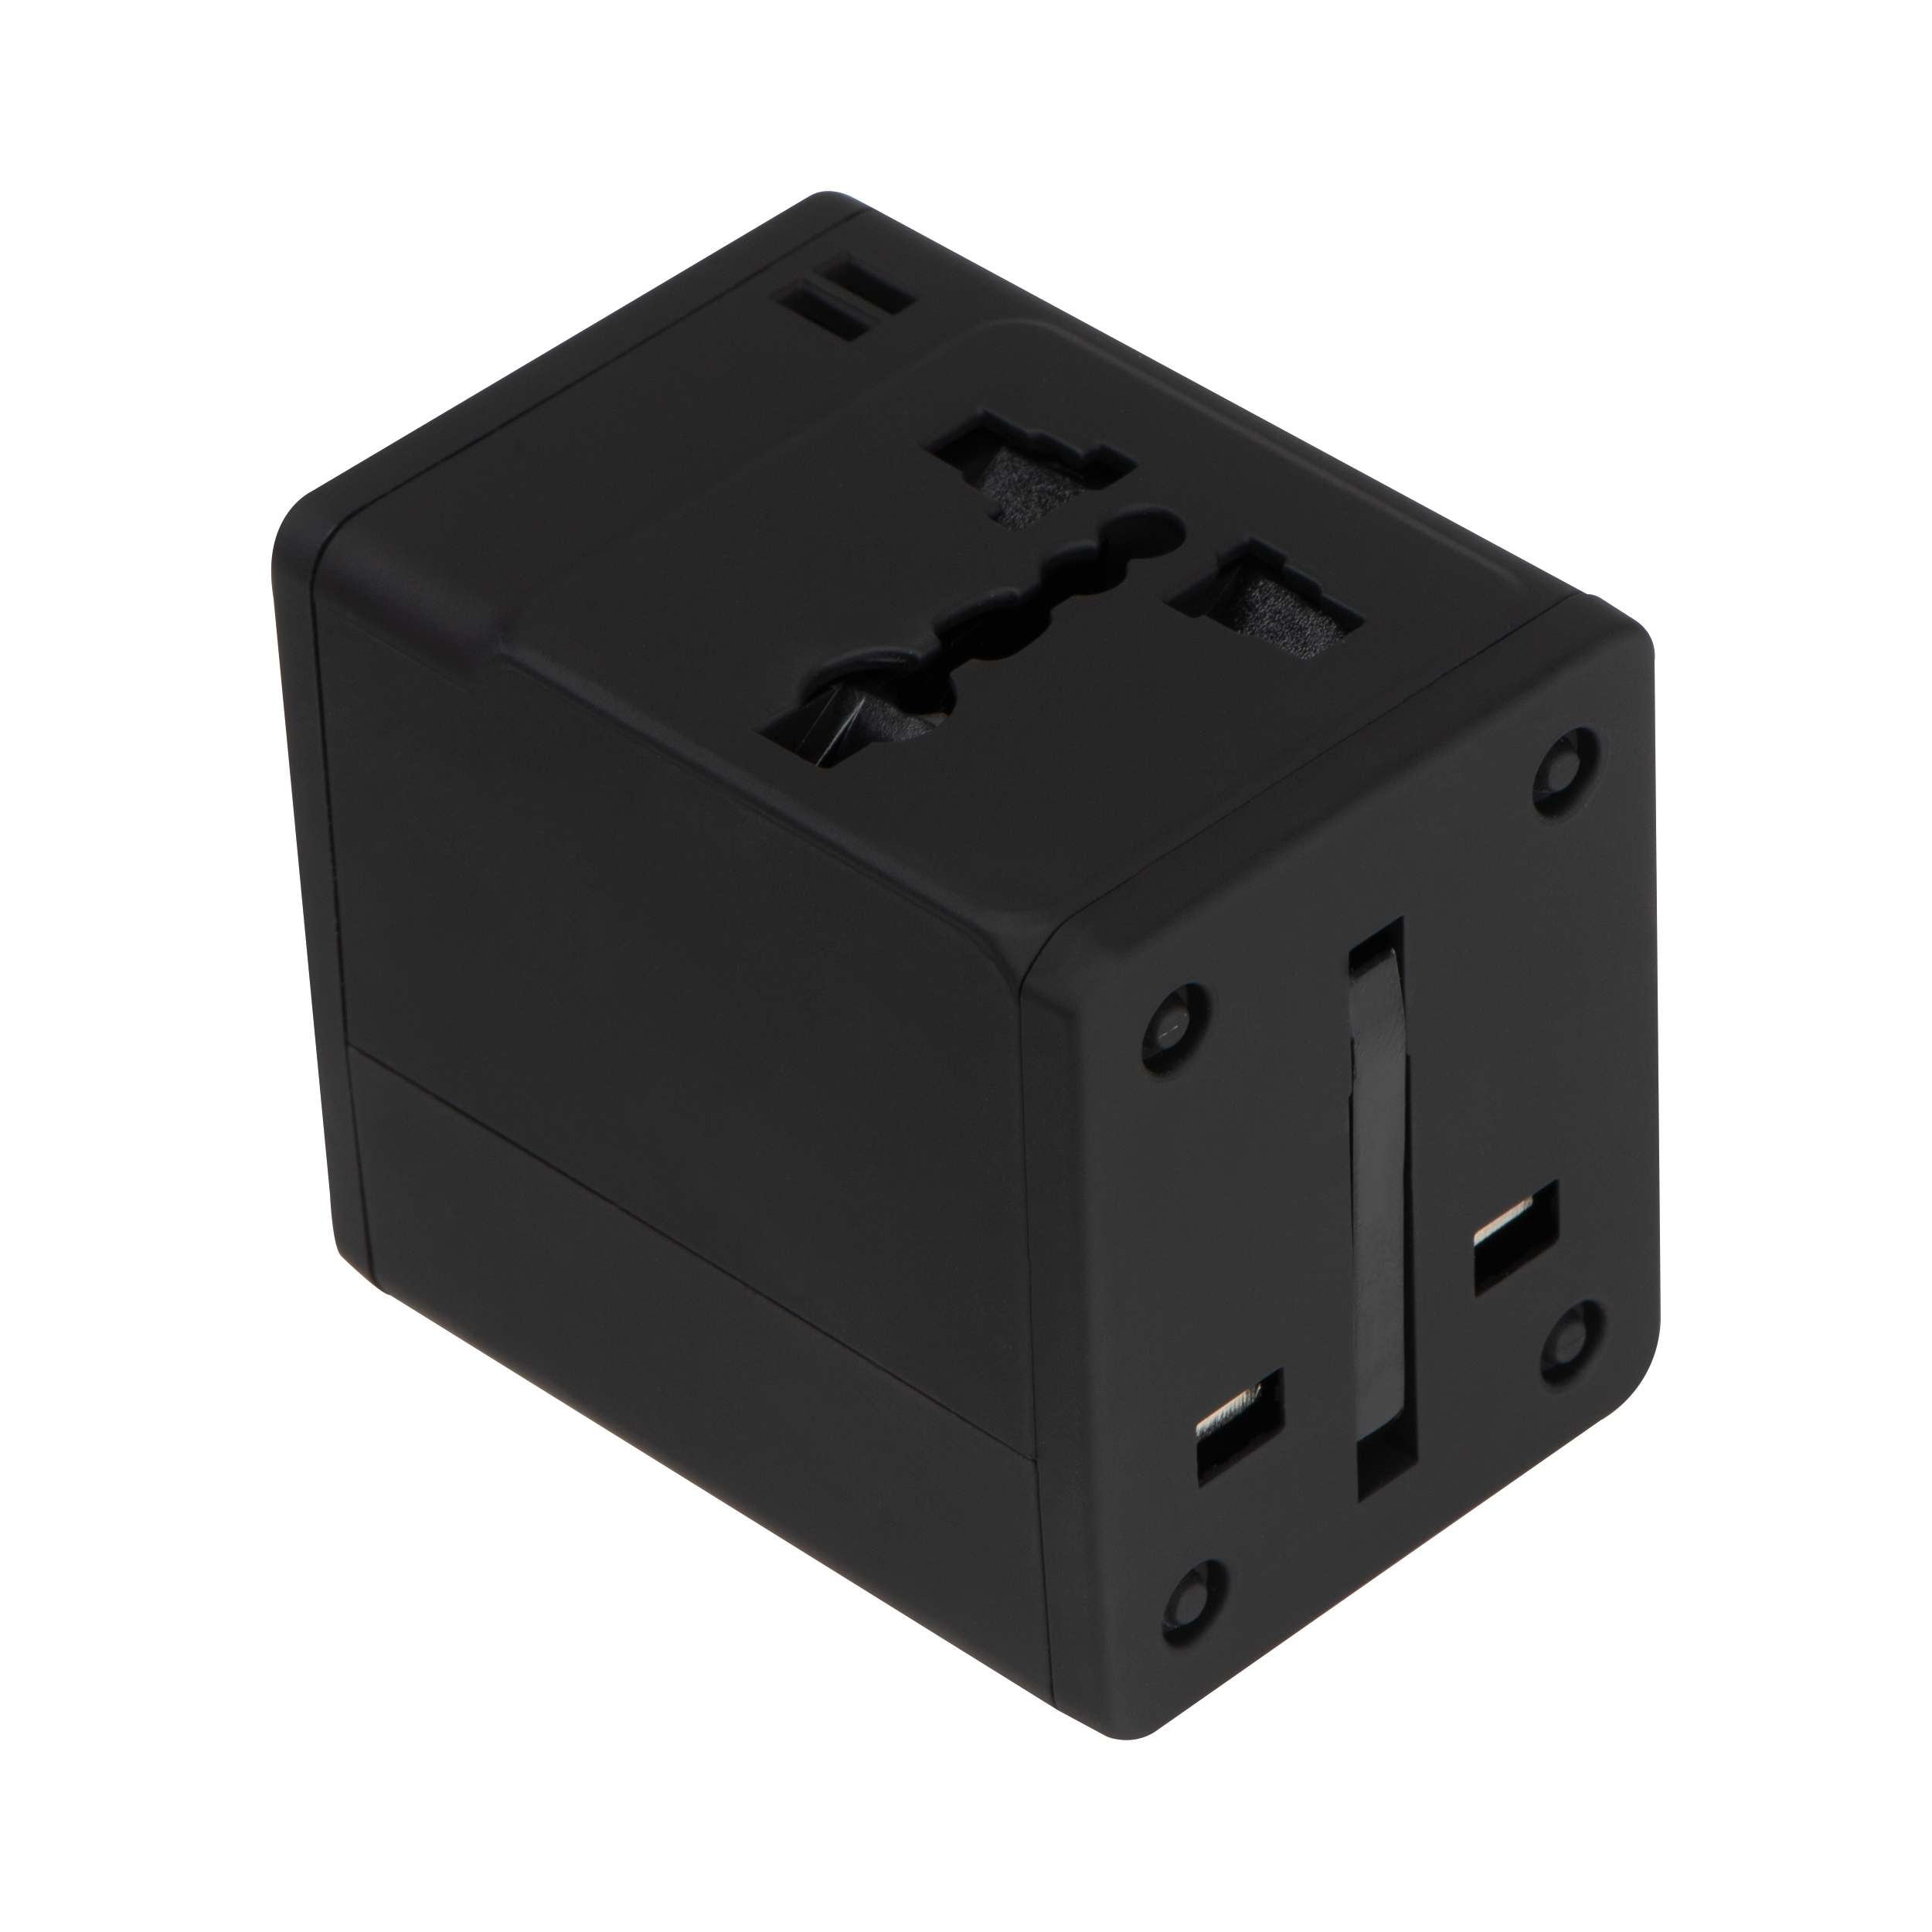 Rubberized travel adapter